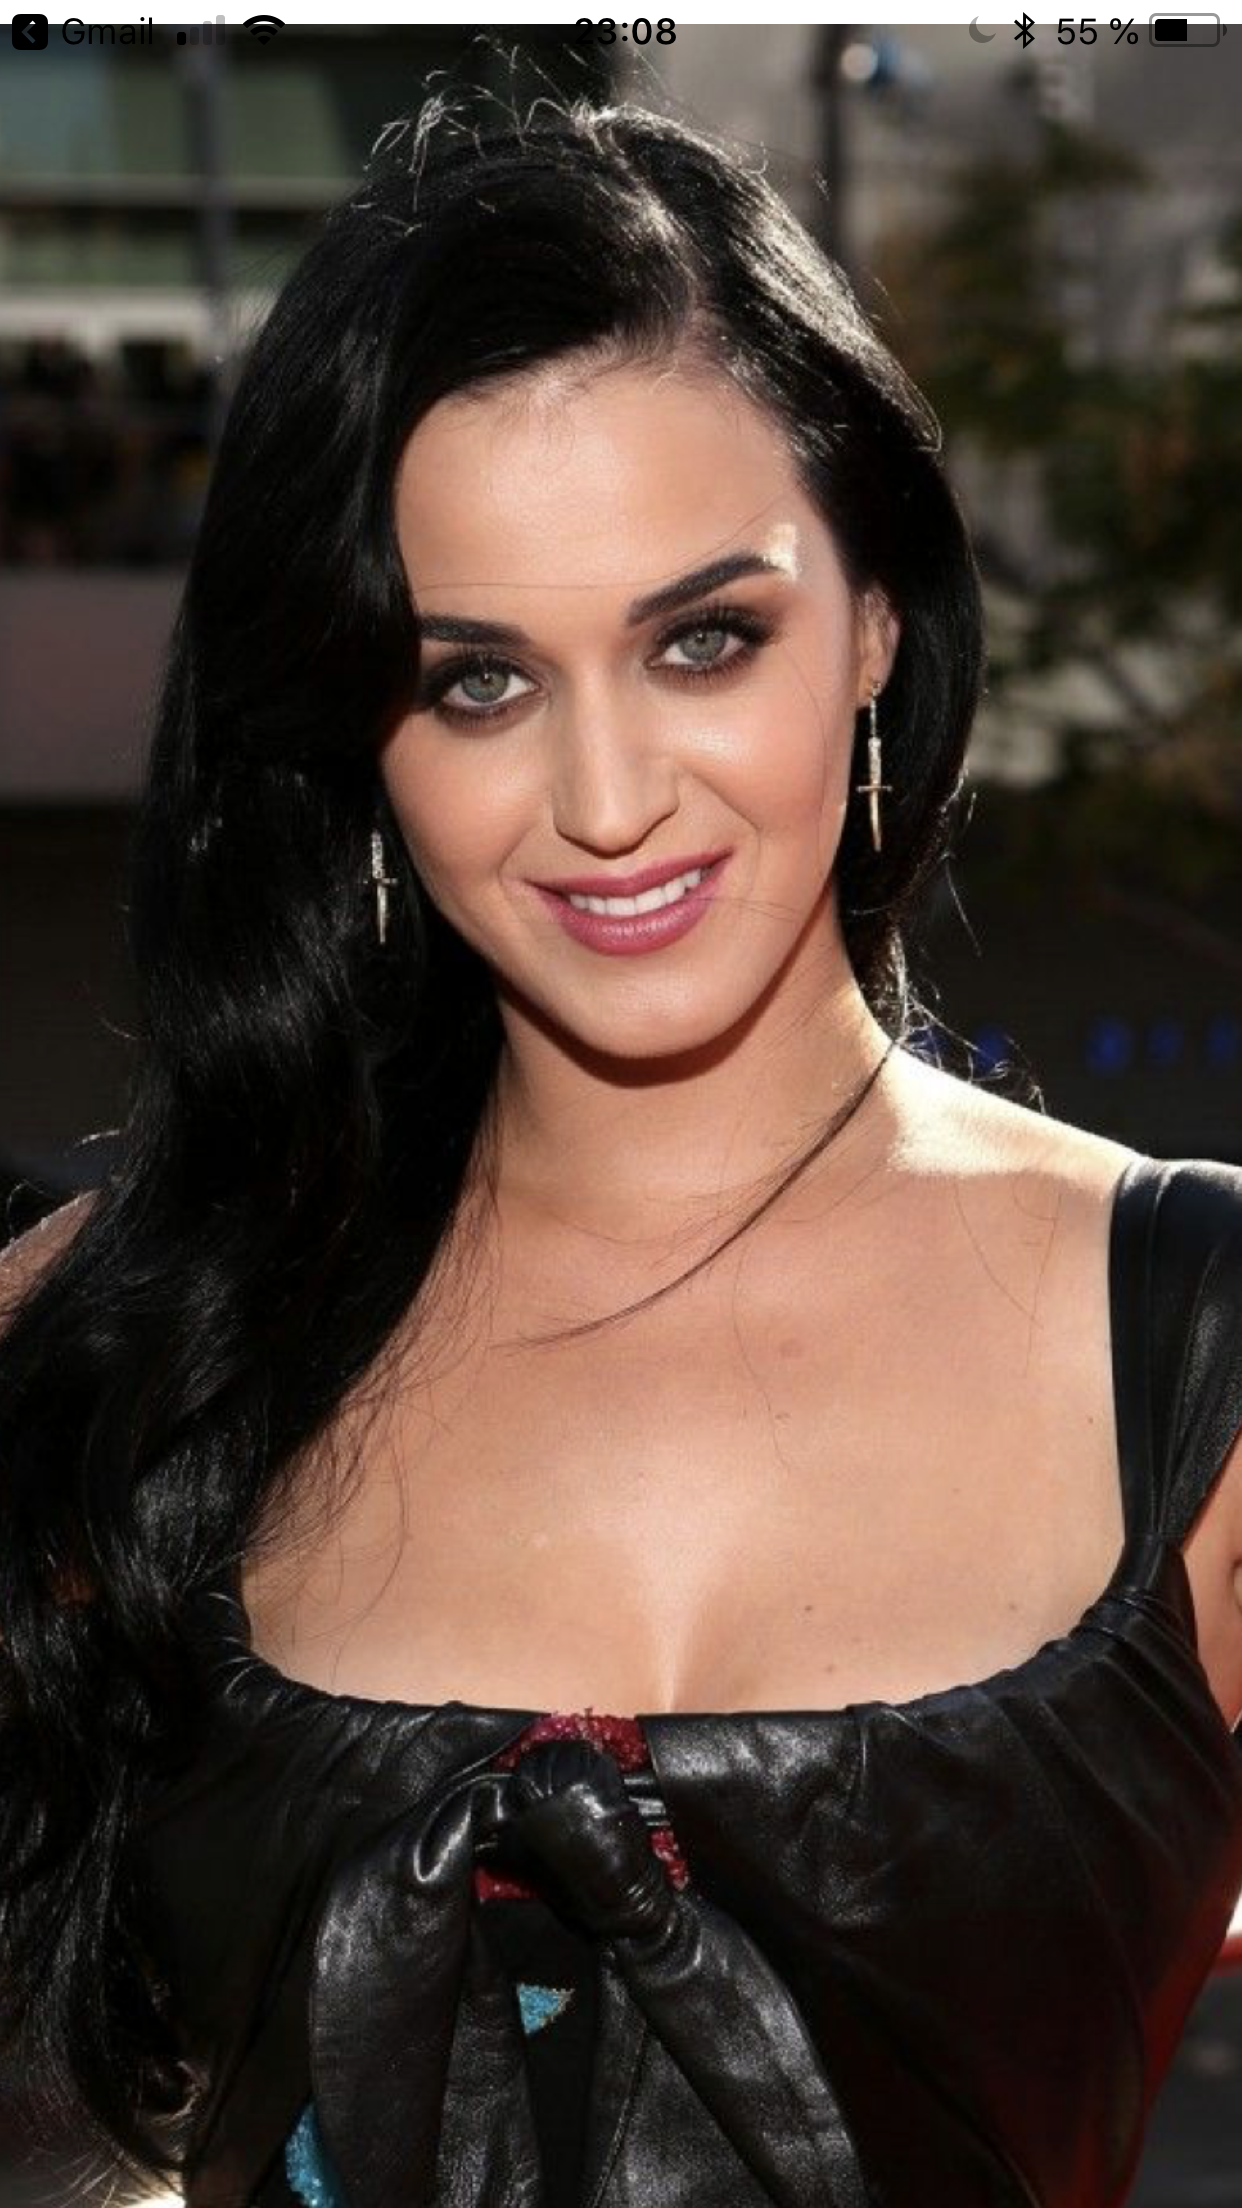 Pin by Winston on MUSIC in 2020 Katy perry photos, Katy